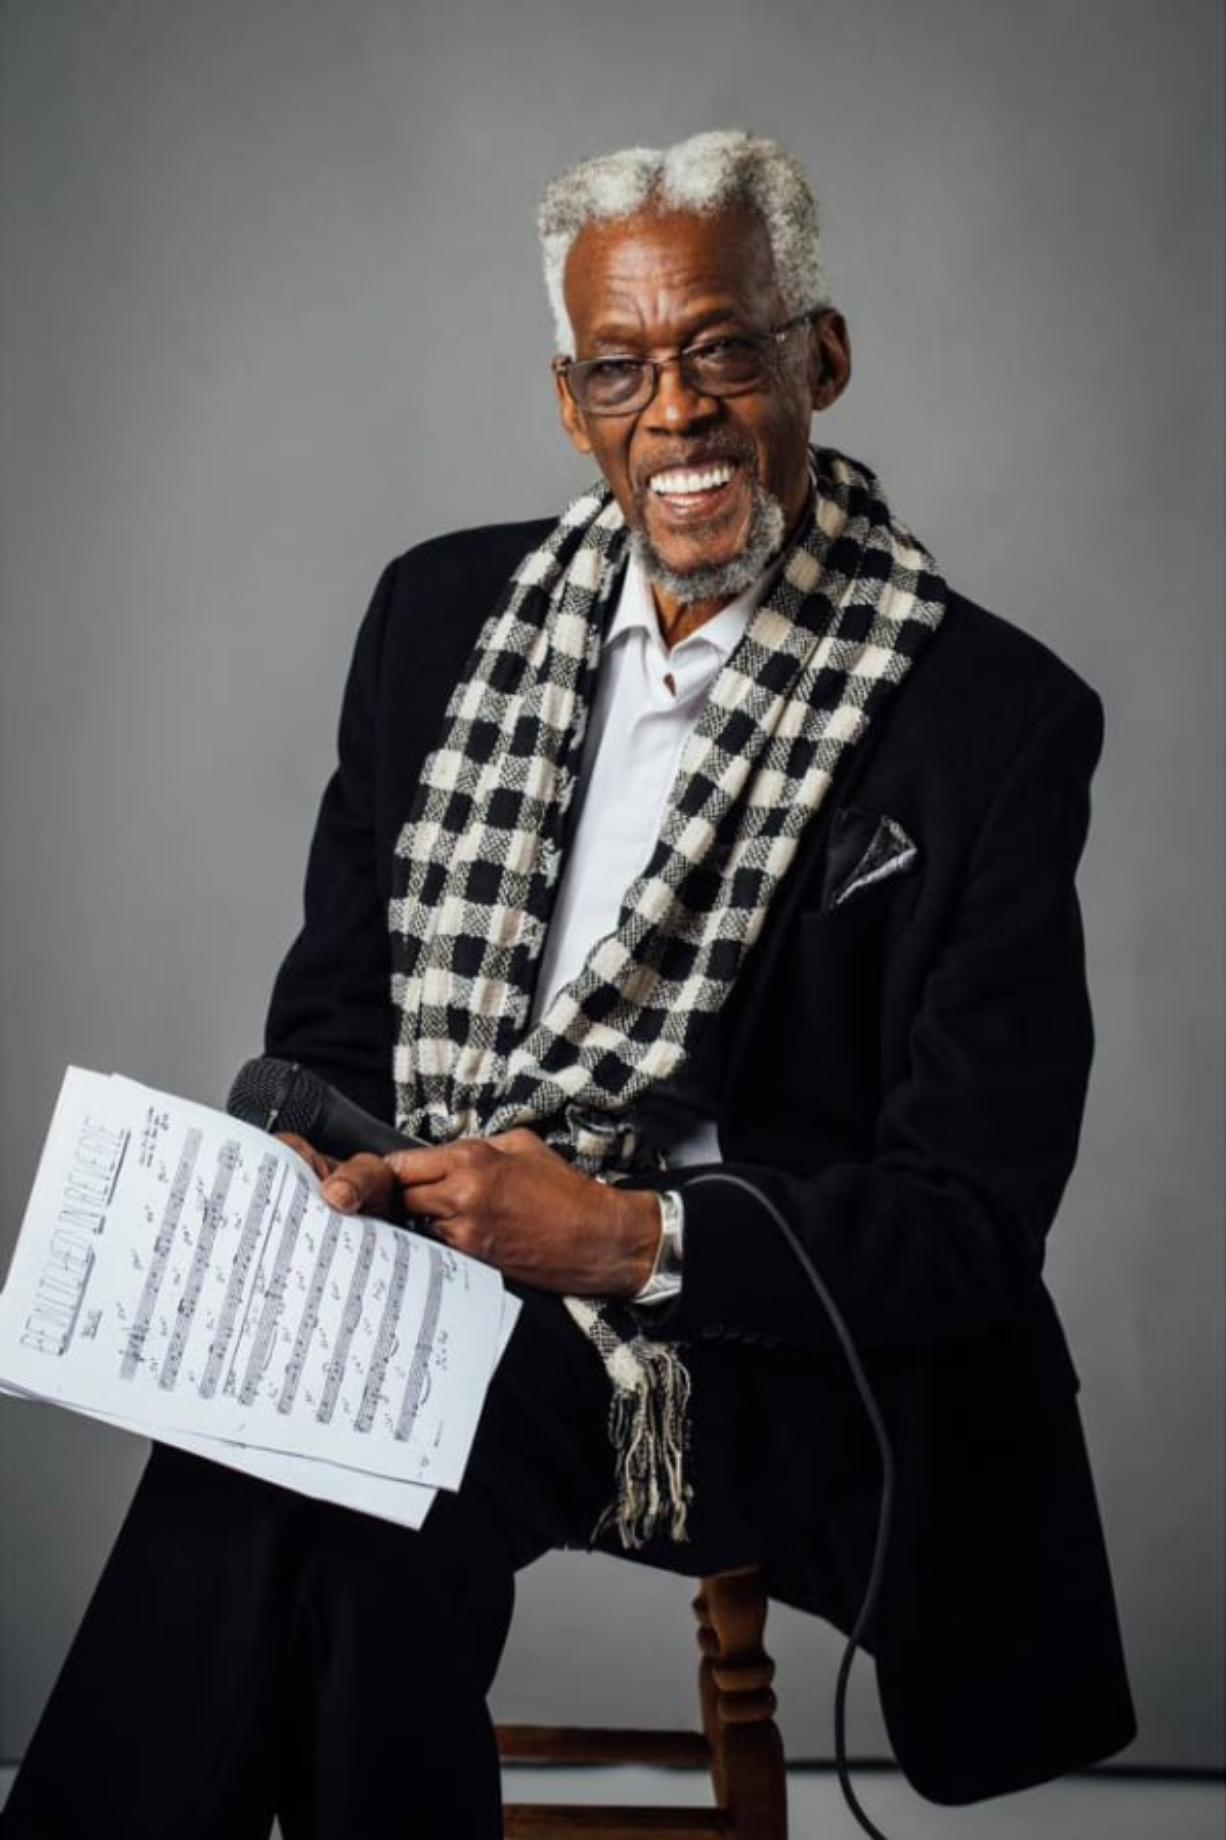 "Jazz singer David Watson, ""The Doctor of Bebop,"" lives in Ridgefield and performs frequently in and around Portland. He will speak about music and civil rights Feb. 27 at the Old Liberty Theater, after a screening of ""Soundtrack for a Revolution."" (Contributed by David Watson)"